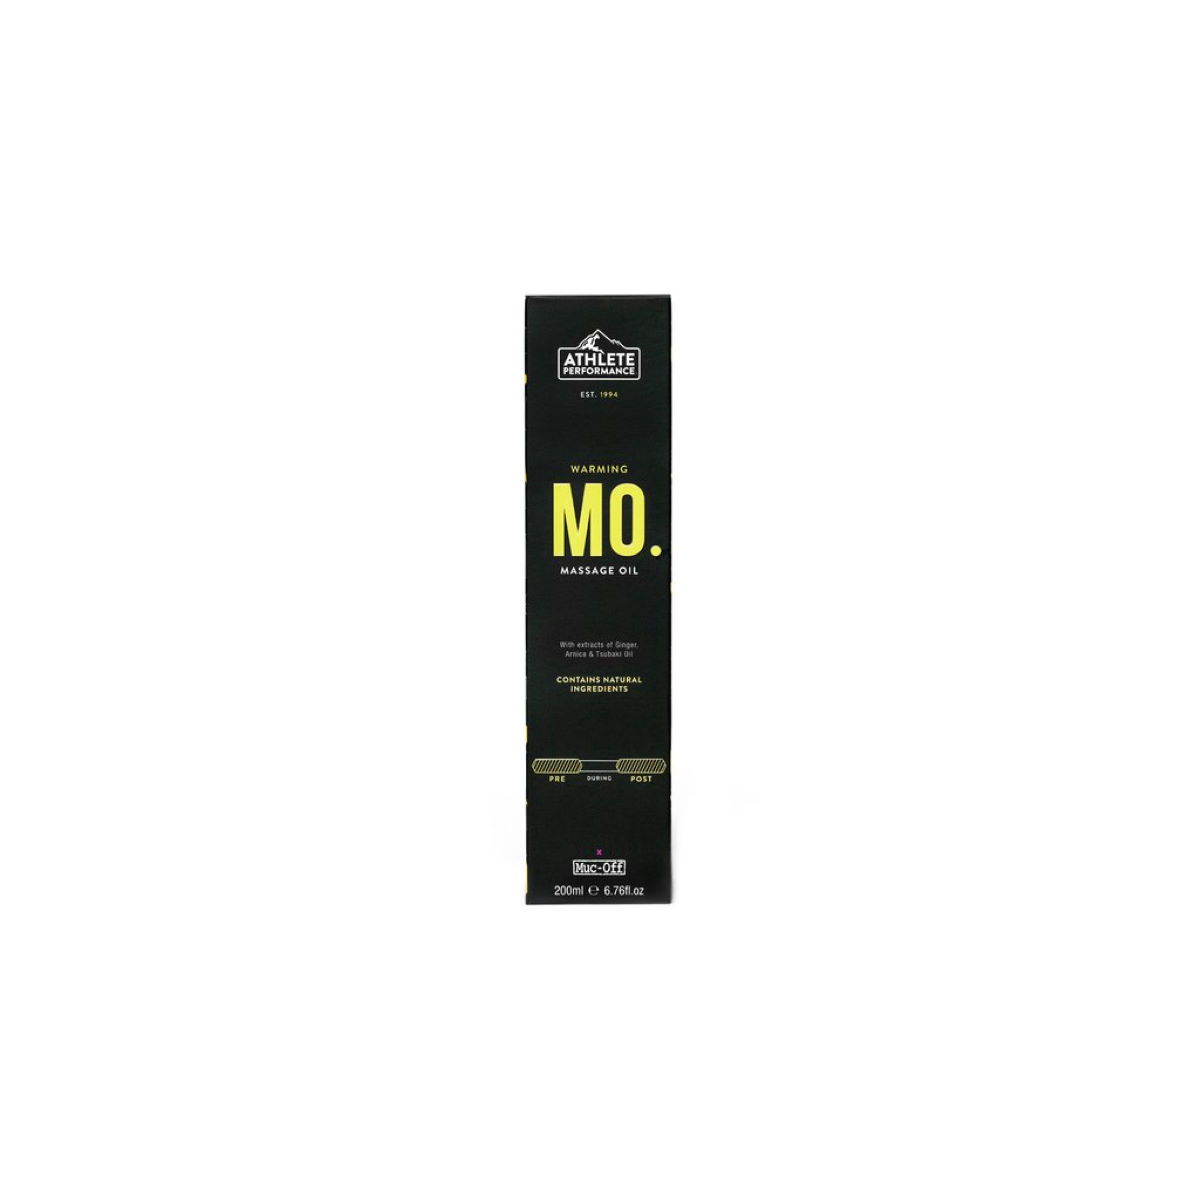 Aceite de masaje Muc-Off Athlete Performance (200 ml) - Cremas musculares